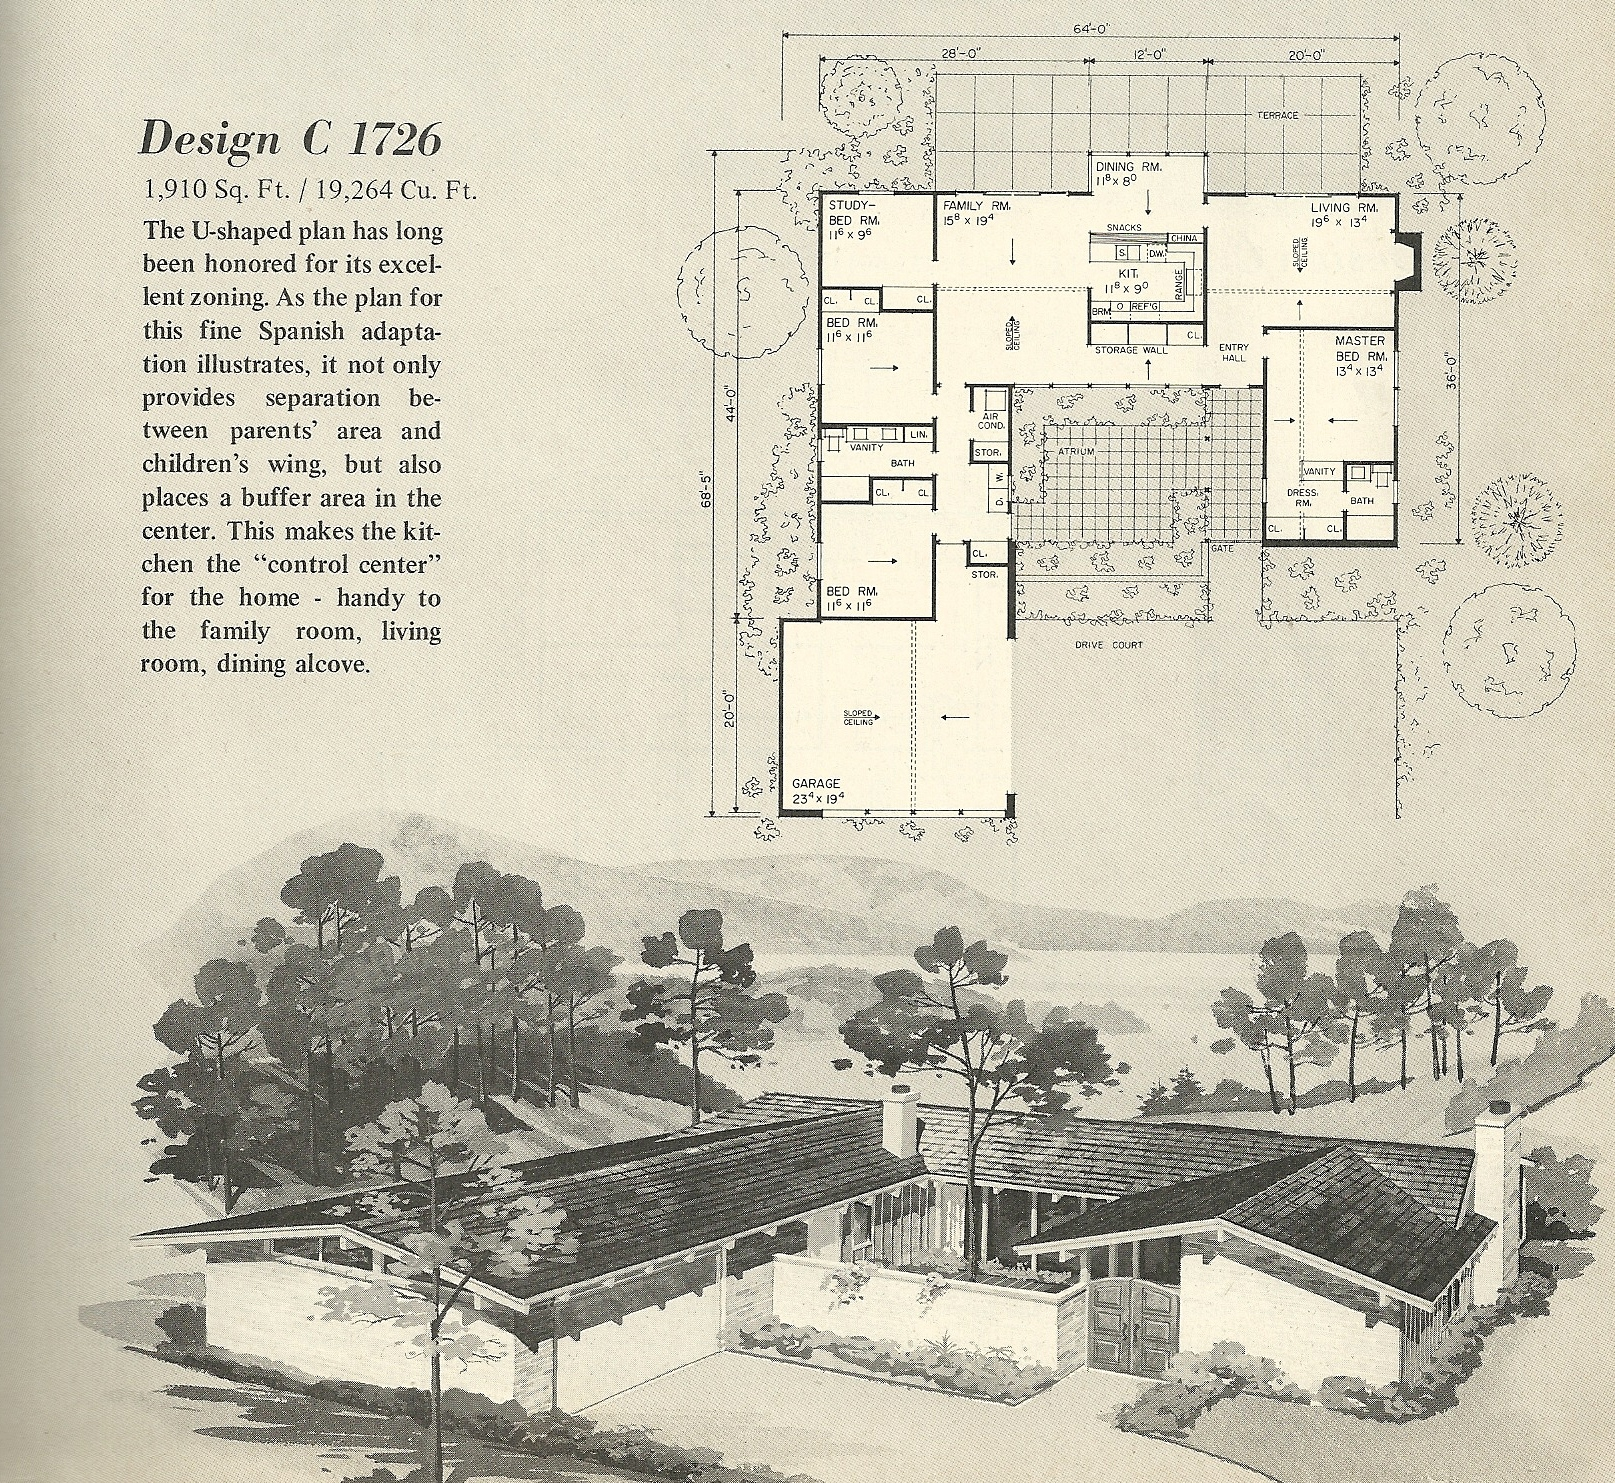 Vintage house plans 1726 antique alter ego Mid century modern home plans